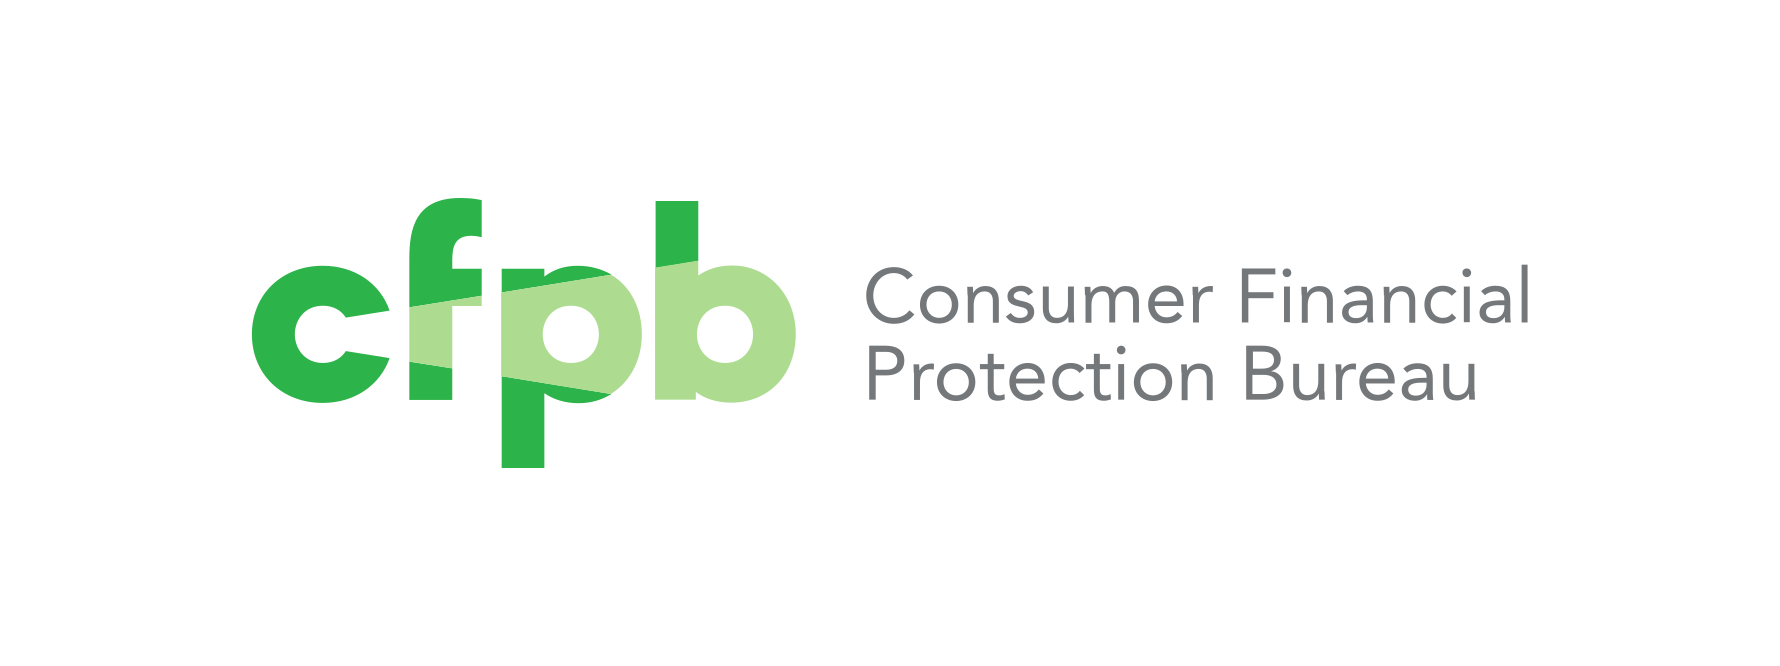 Cfpb Report: Consumer Complaint Submission Patterns Vary by Demographic Characteristics of Census Tract